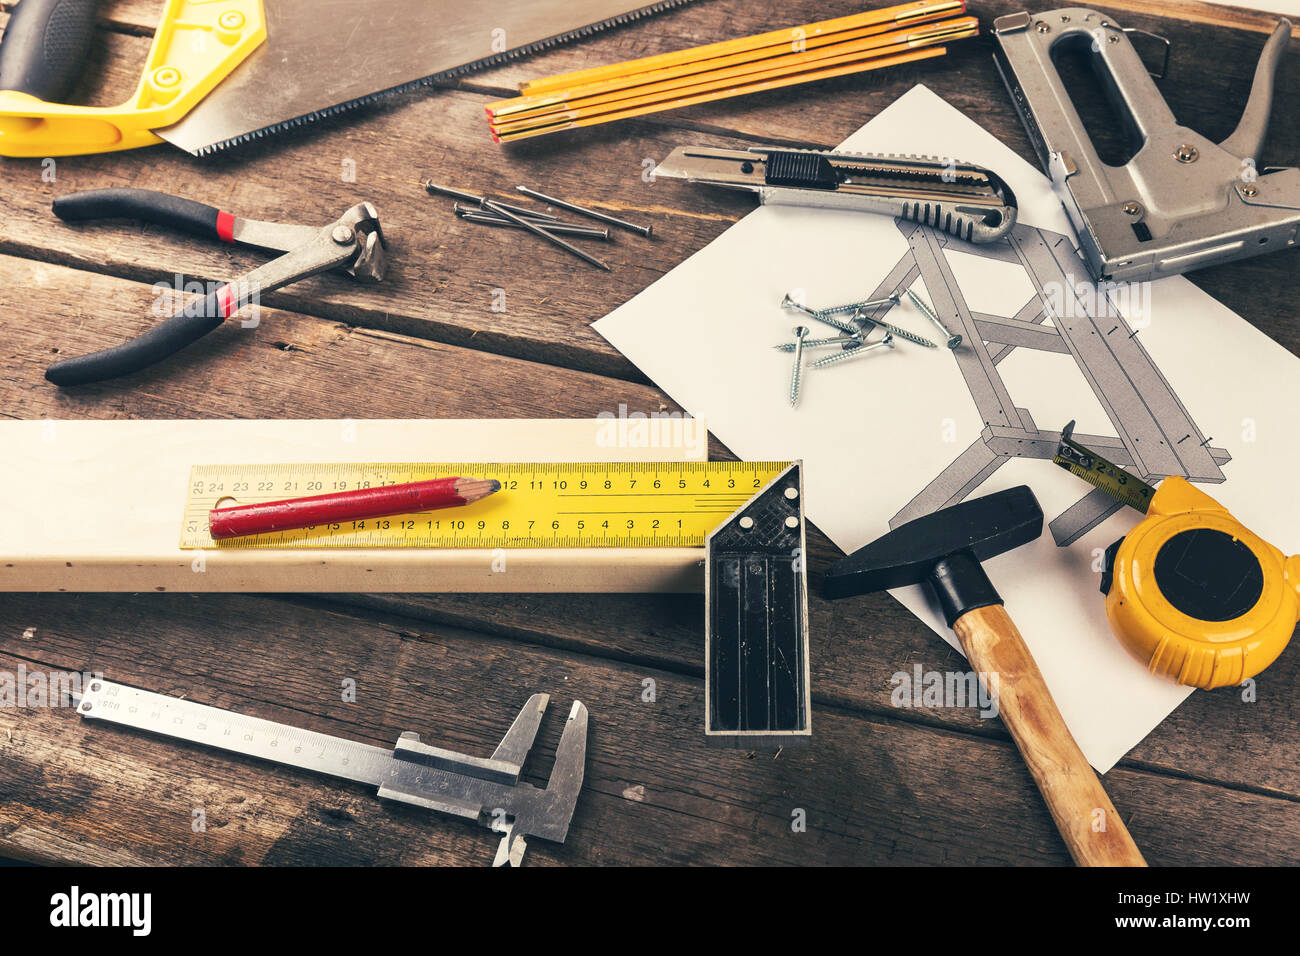 carpenter diy tools on old wooden table in workshop Stock Photo